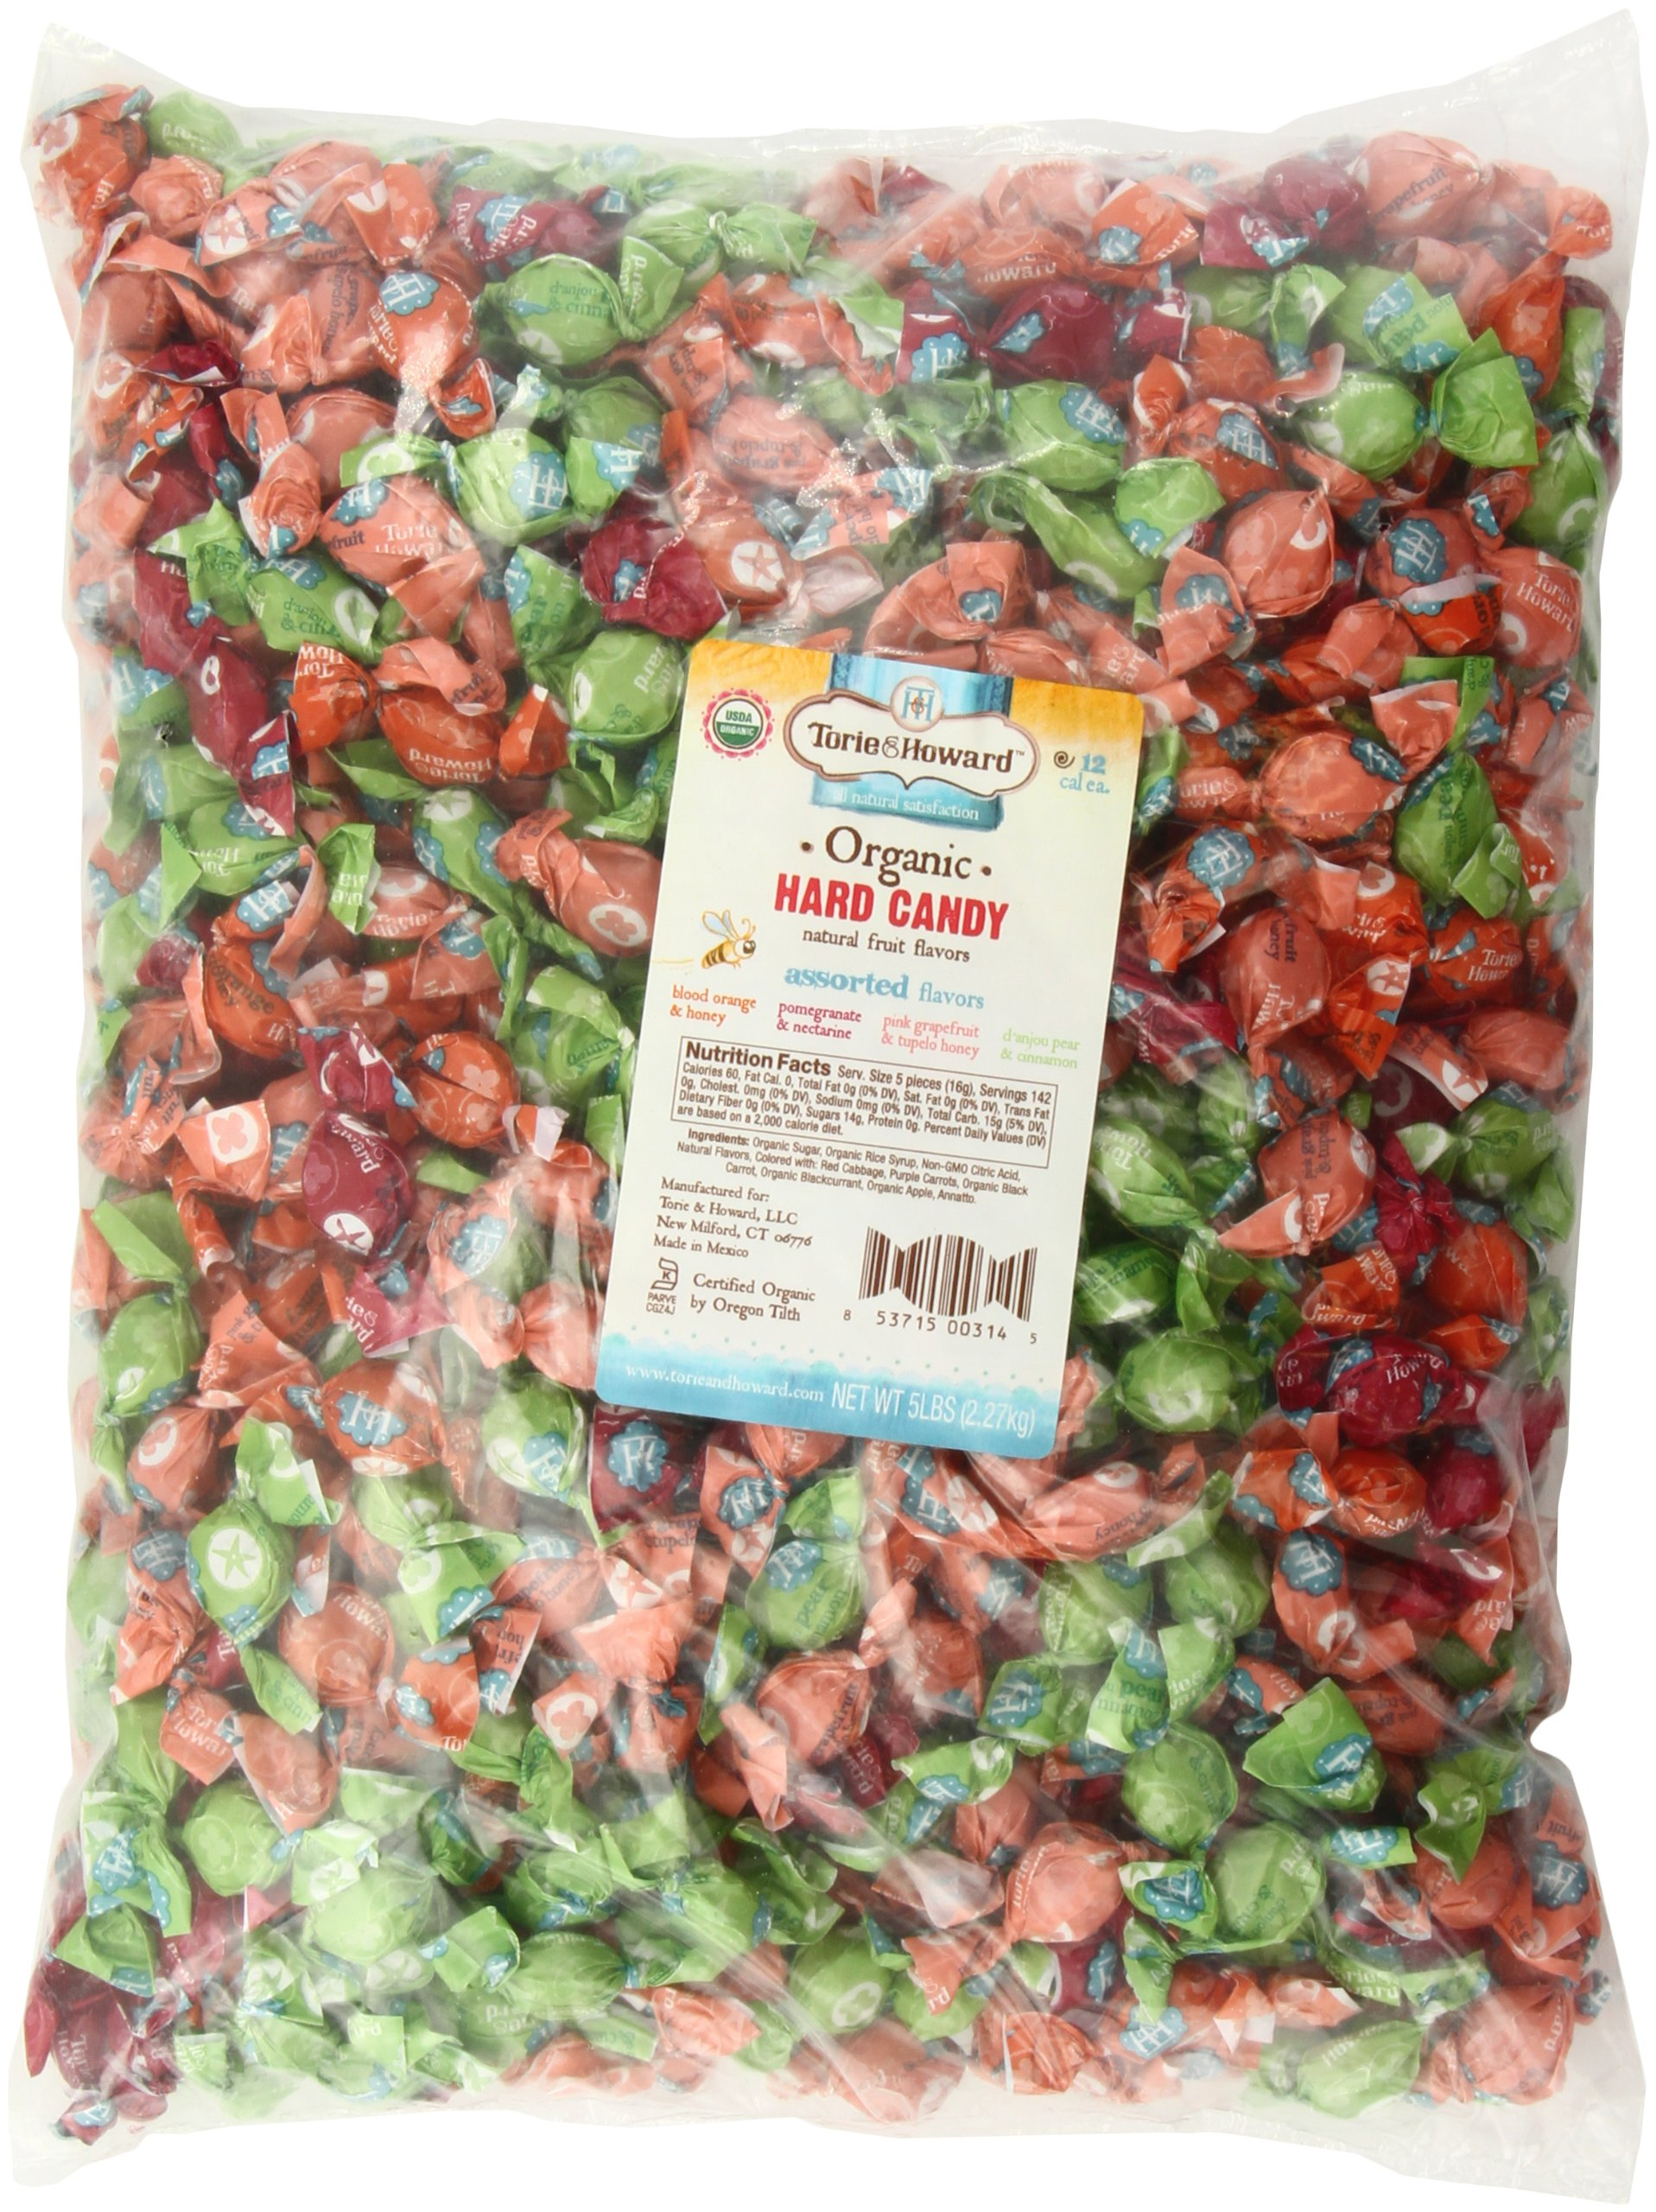 Torie and Howard Organic Hard Candy Bulk Candy, Five Assorted Flavors, 5 pound bag